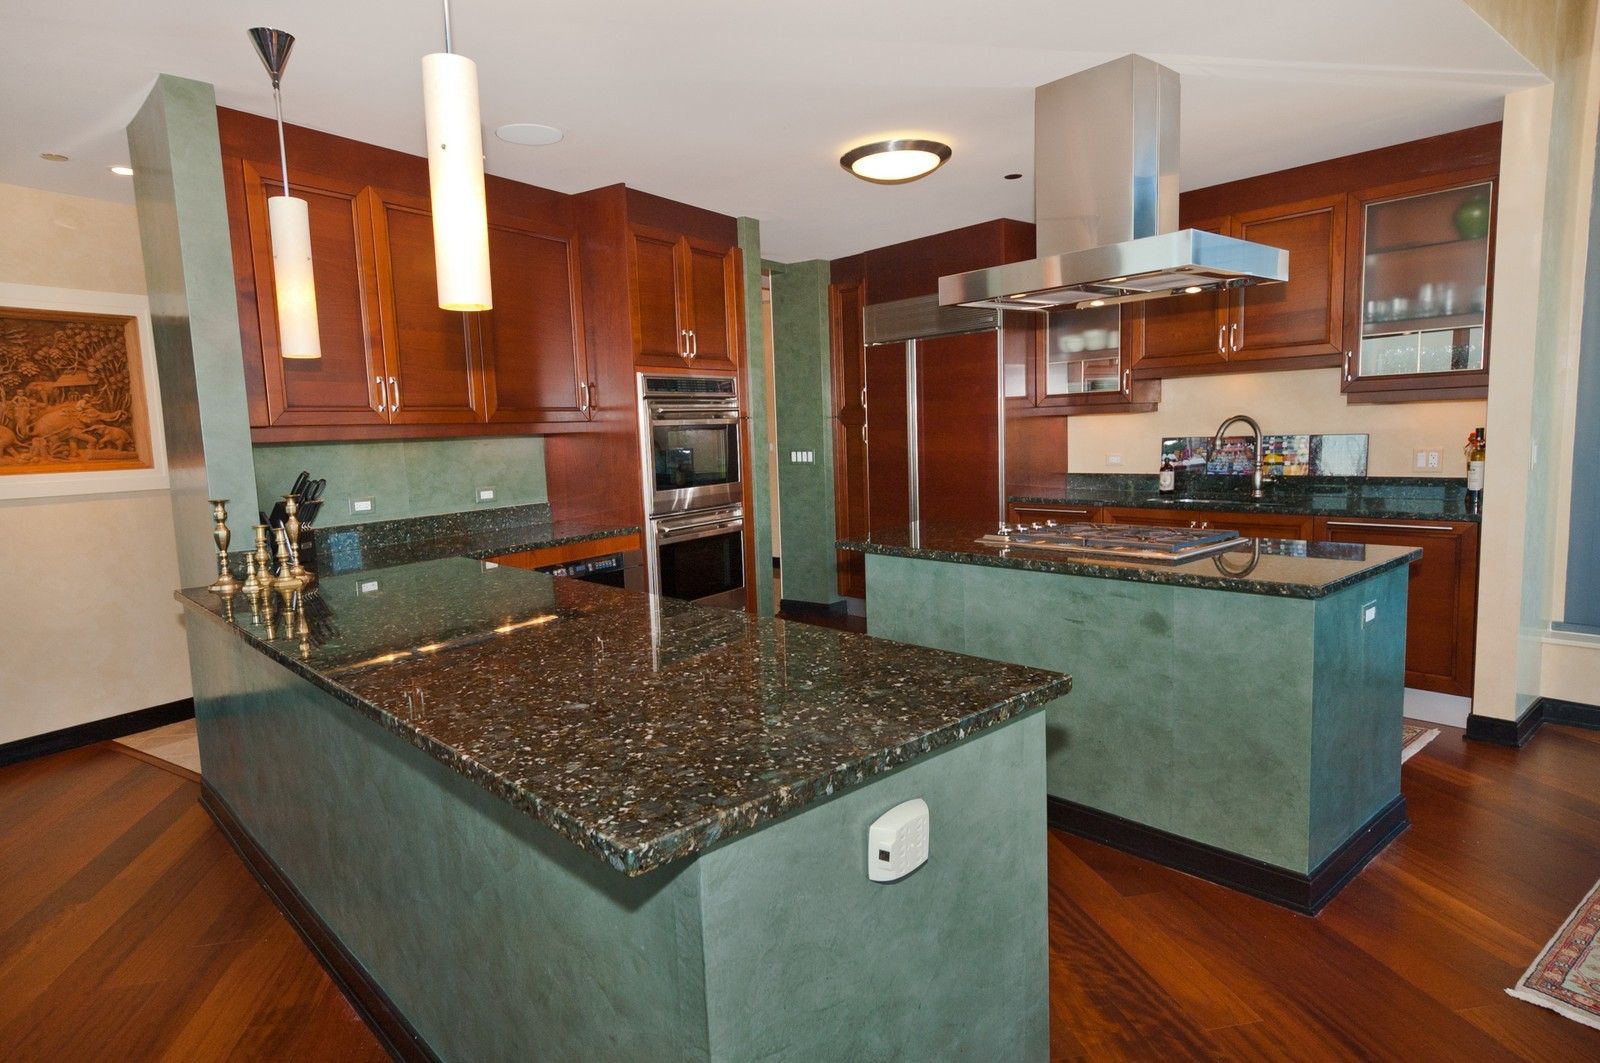 Real Estate Photography - 60 E. Monroe, 5901, Chicago, IL, 60603 - Kitchen 1